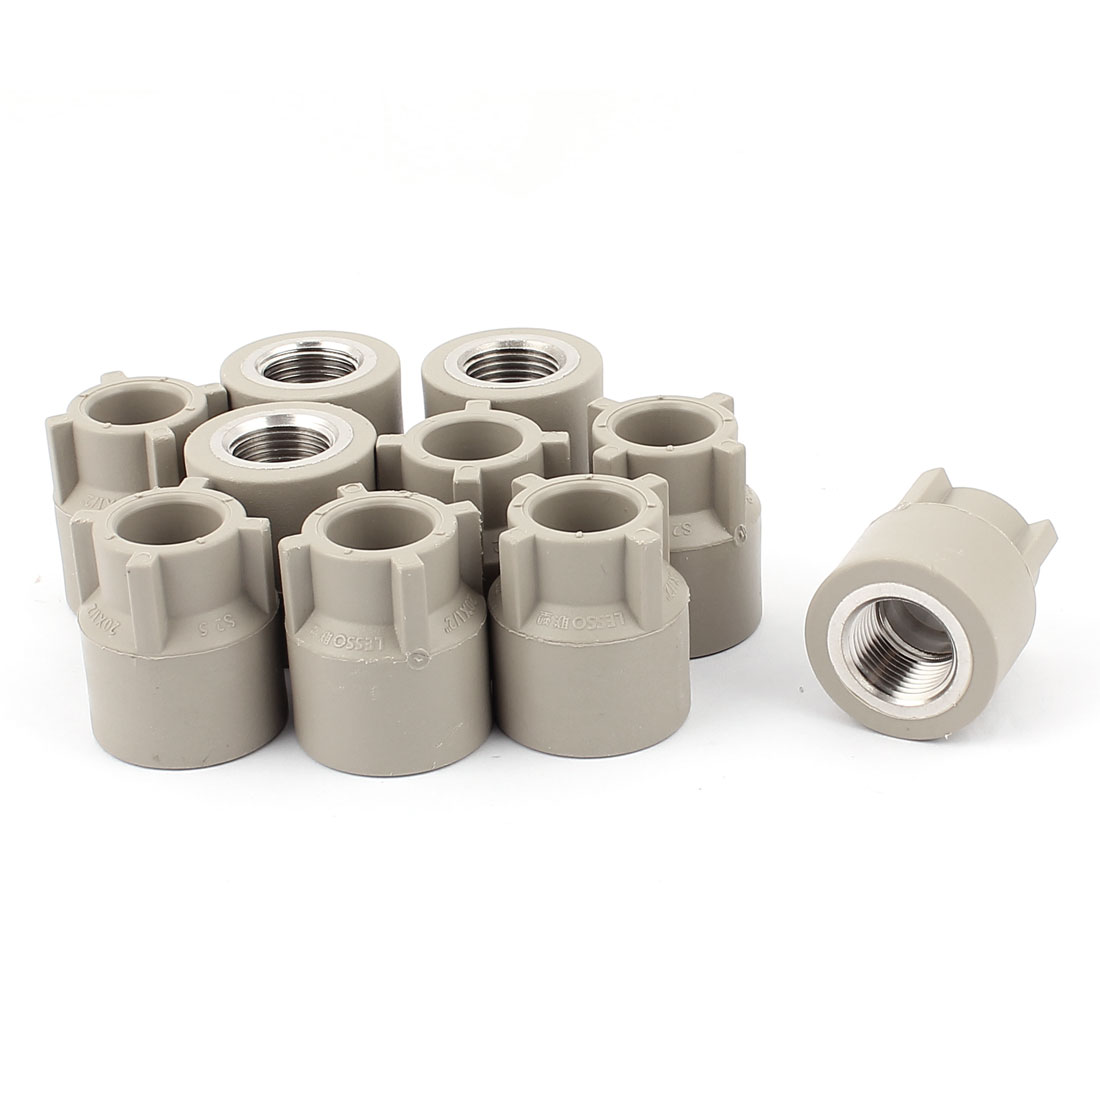 10pcs 1/2BSP Female Thread Straight PPR Pipe Fitting Connector Gray